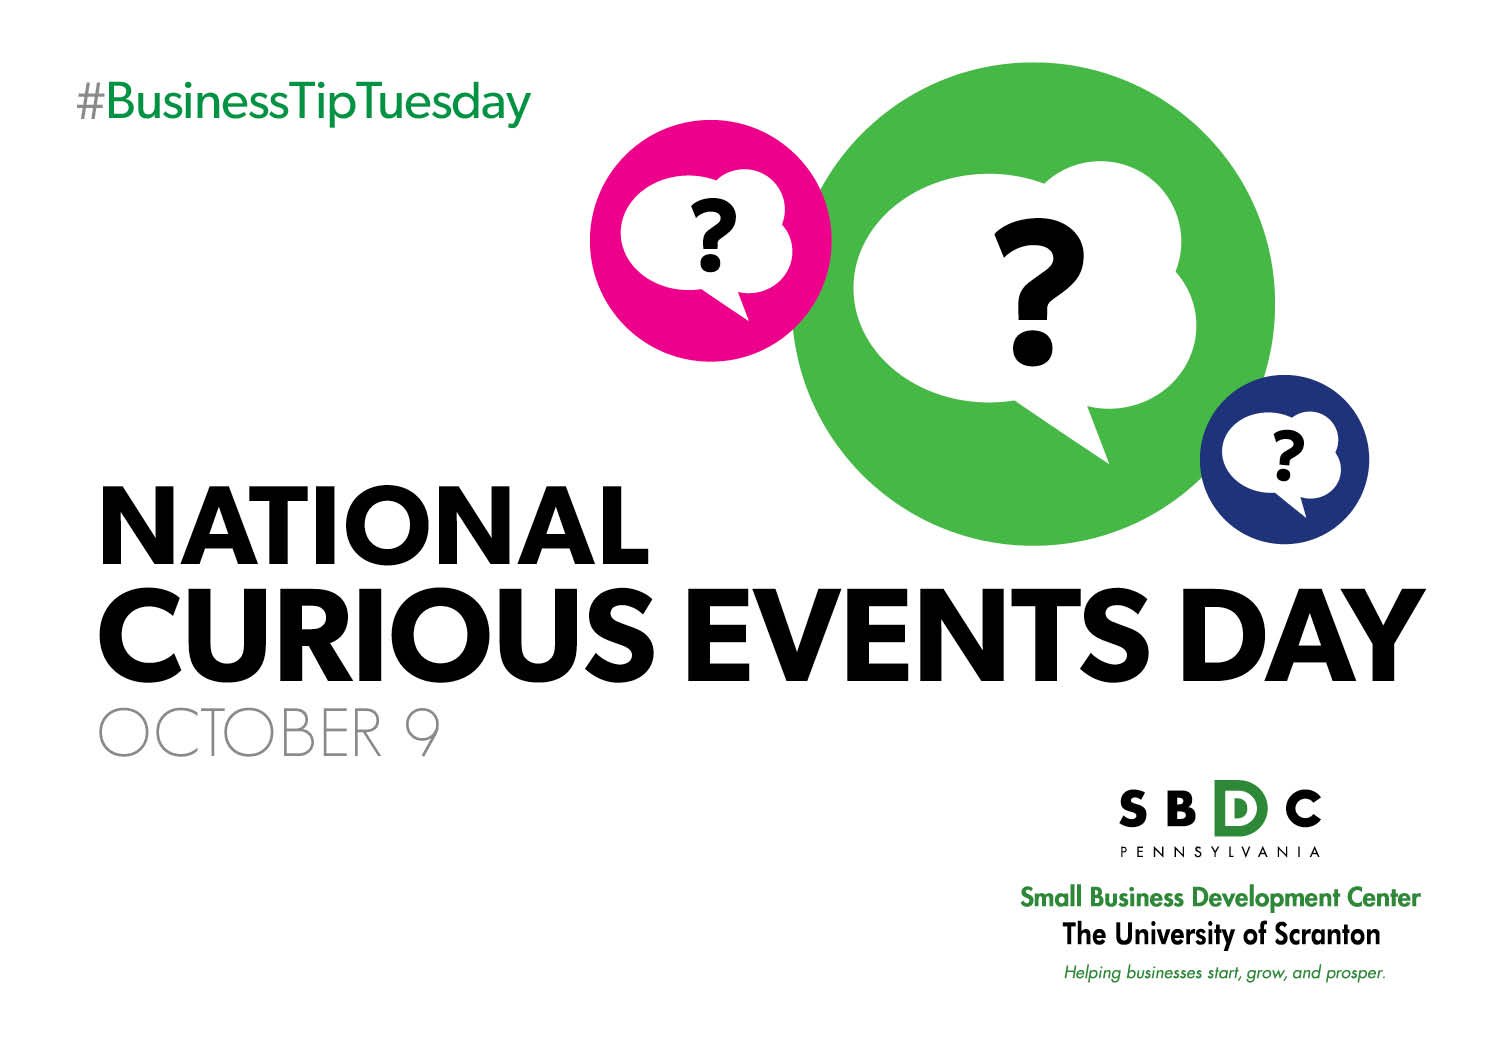 #BusinessTipTuesday – National Curious Events Day